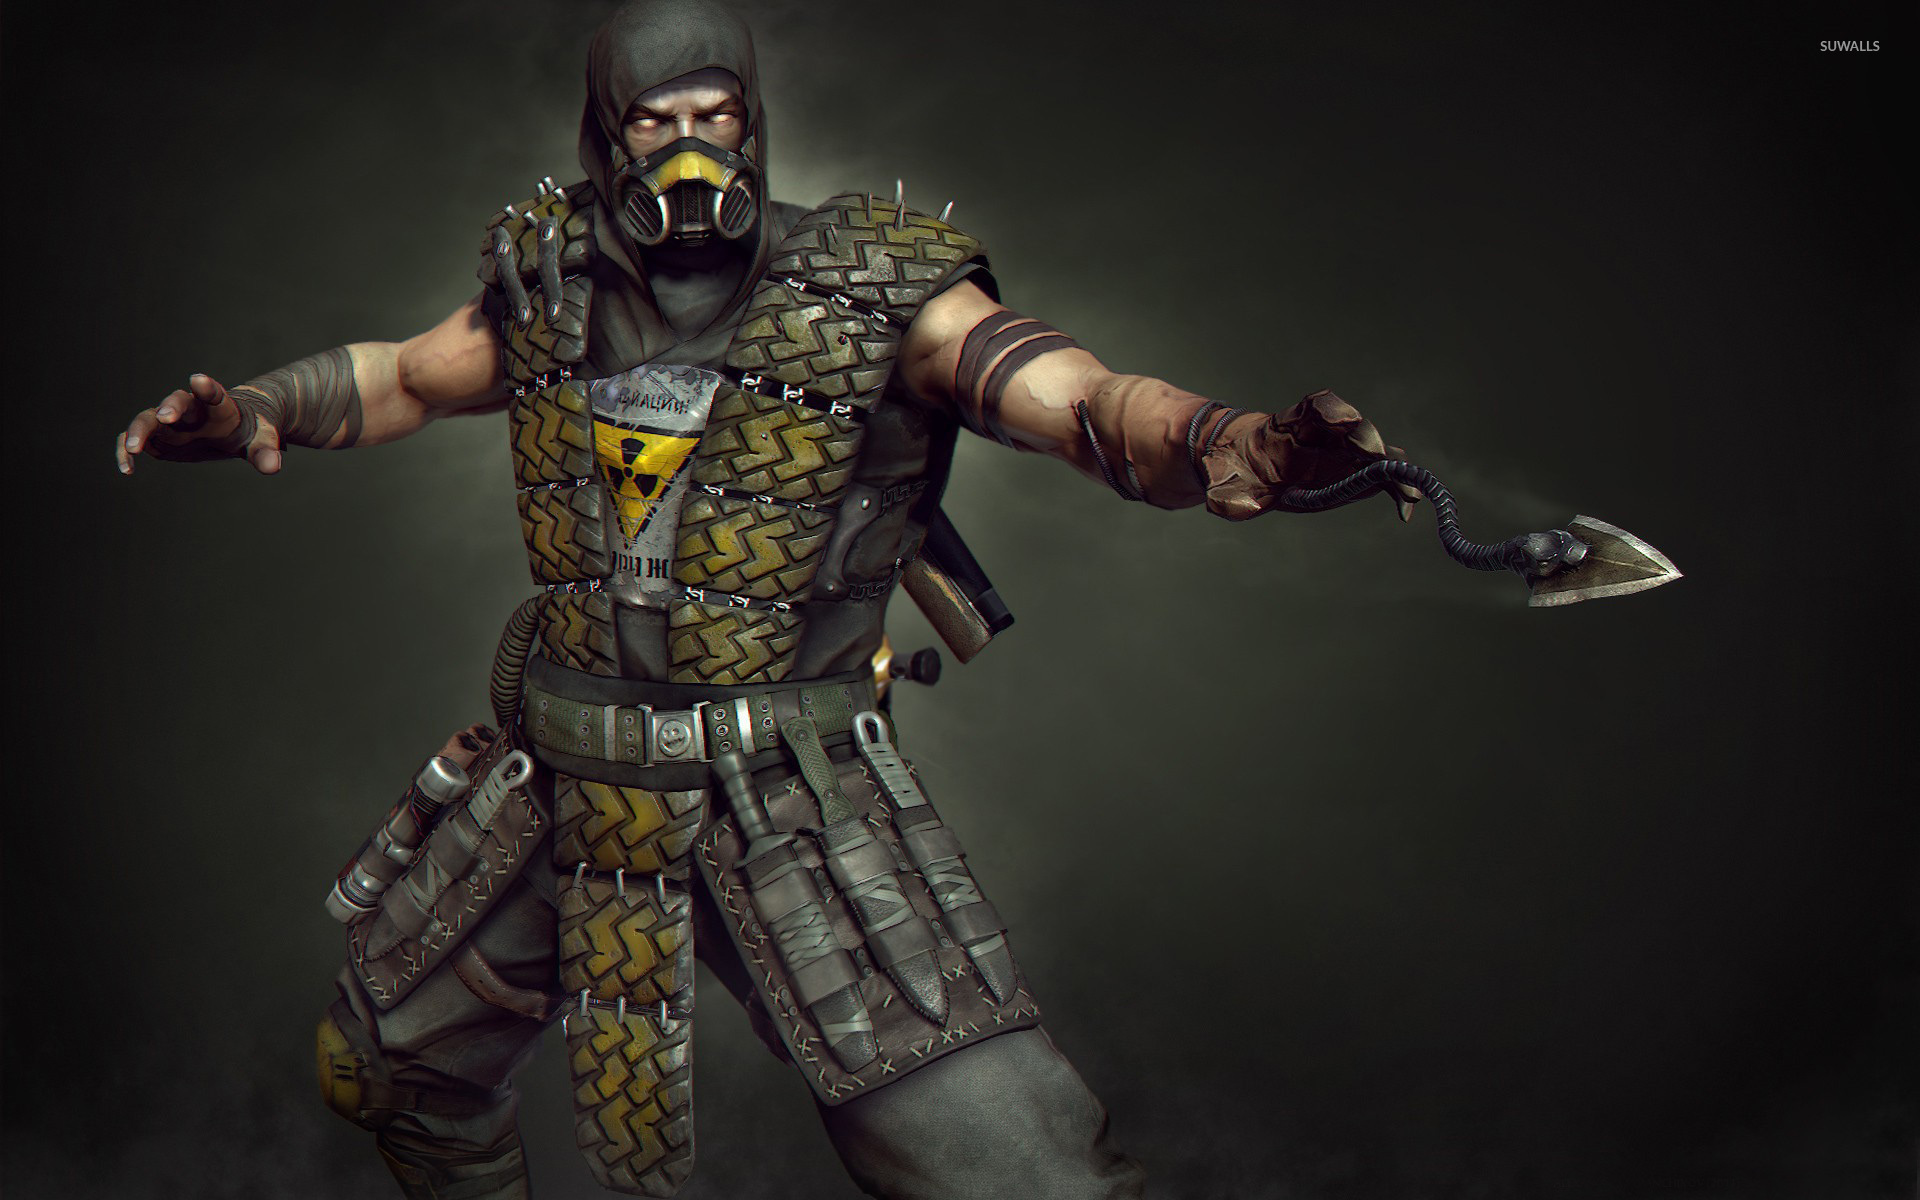 scorpion in mortal kombat hd wallpaper 4068 1280x800